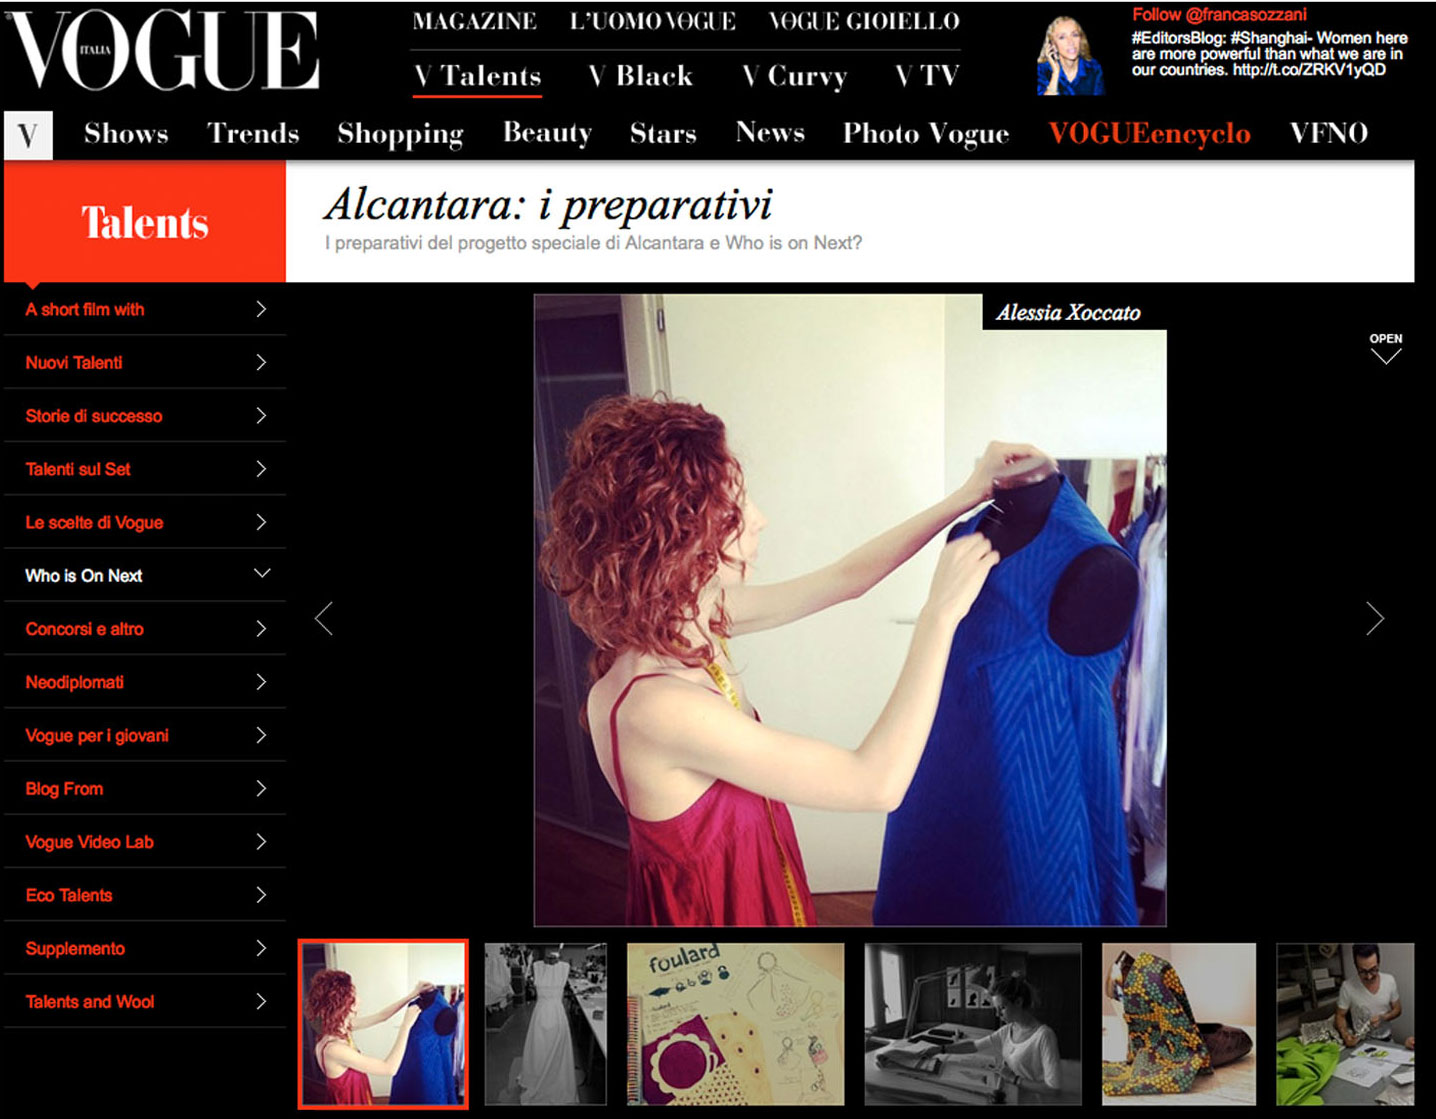 Alessia Xoccato 2012_05_Vogue.it-2 2012   Alessia Xoccato 2012_05_Vogue.it-3 2012   Alessia Xoccato 2012_05_Vogue.it_ 2012   Alessia Xoccato 2012_07_Vogue.it-2 2012   Alessia Xoccato 2012_07_Vogue.it-3 2012   Alessia Xoccato 2012_07_Vogue.it-4 2012   Alessia Xoccato 2012_07_Vogue.it-5 2012   Alessia Xoccato 2012_07_Vogue.it-7 2012